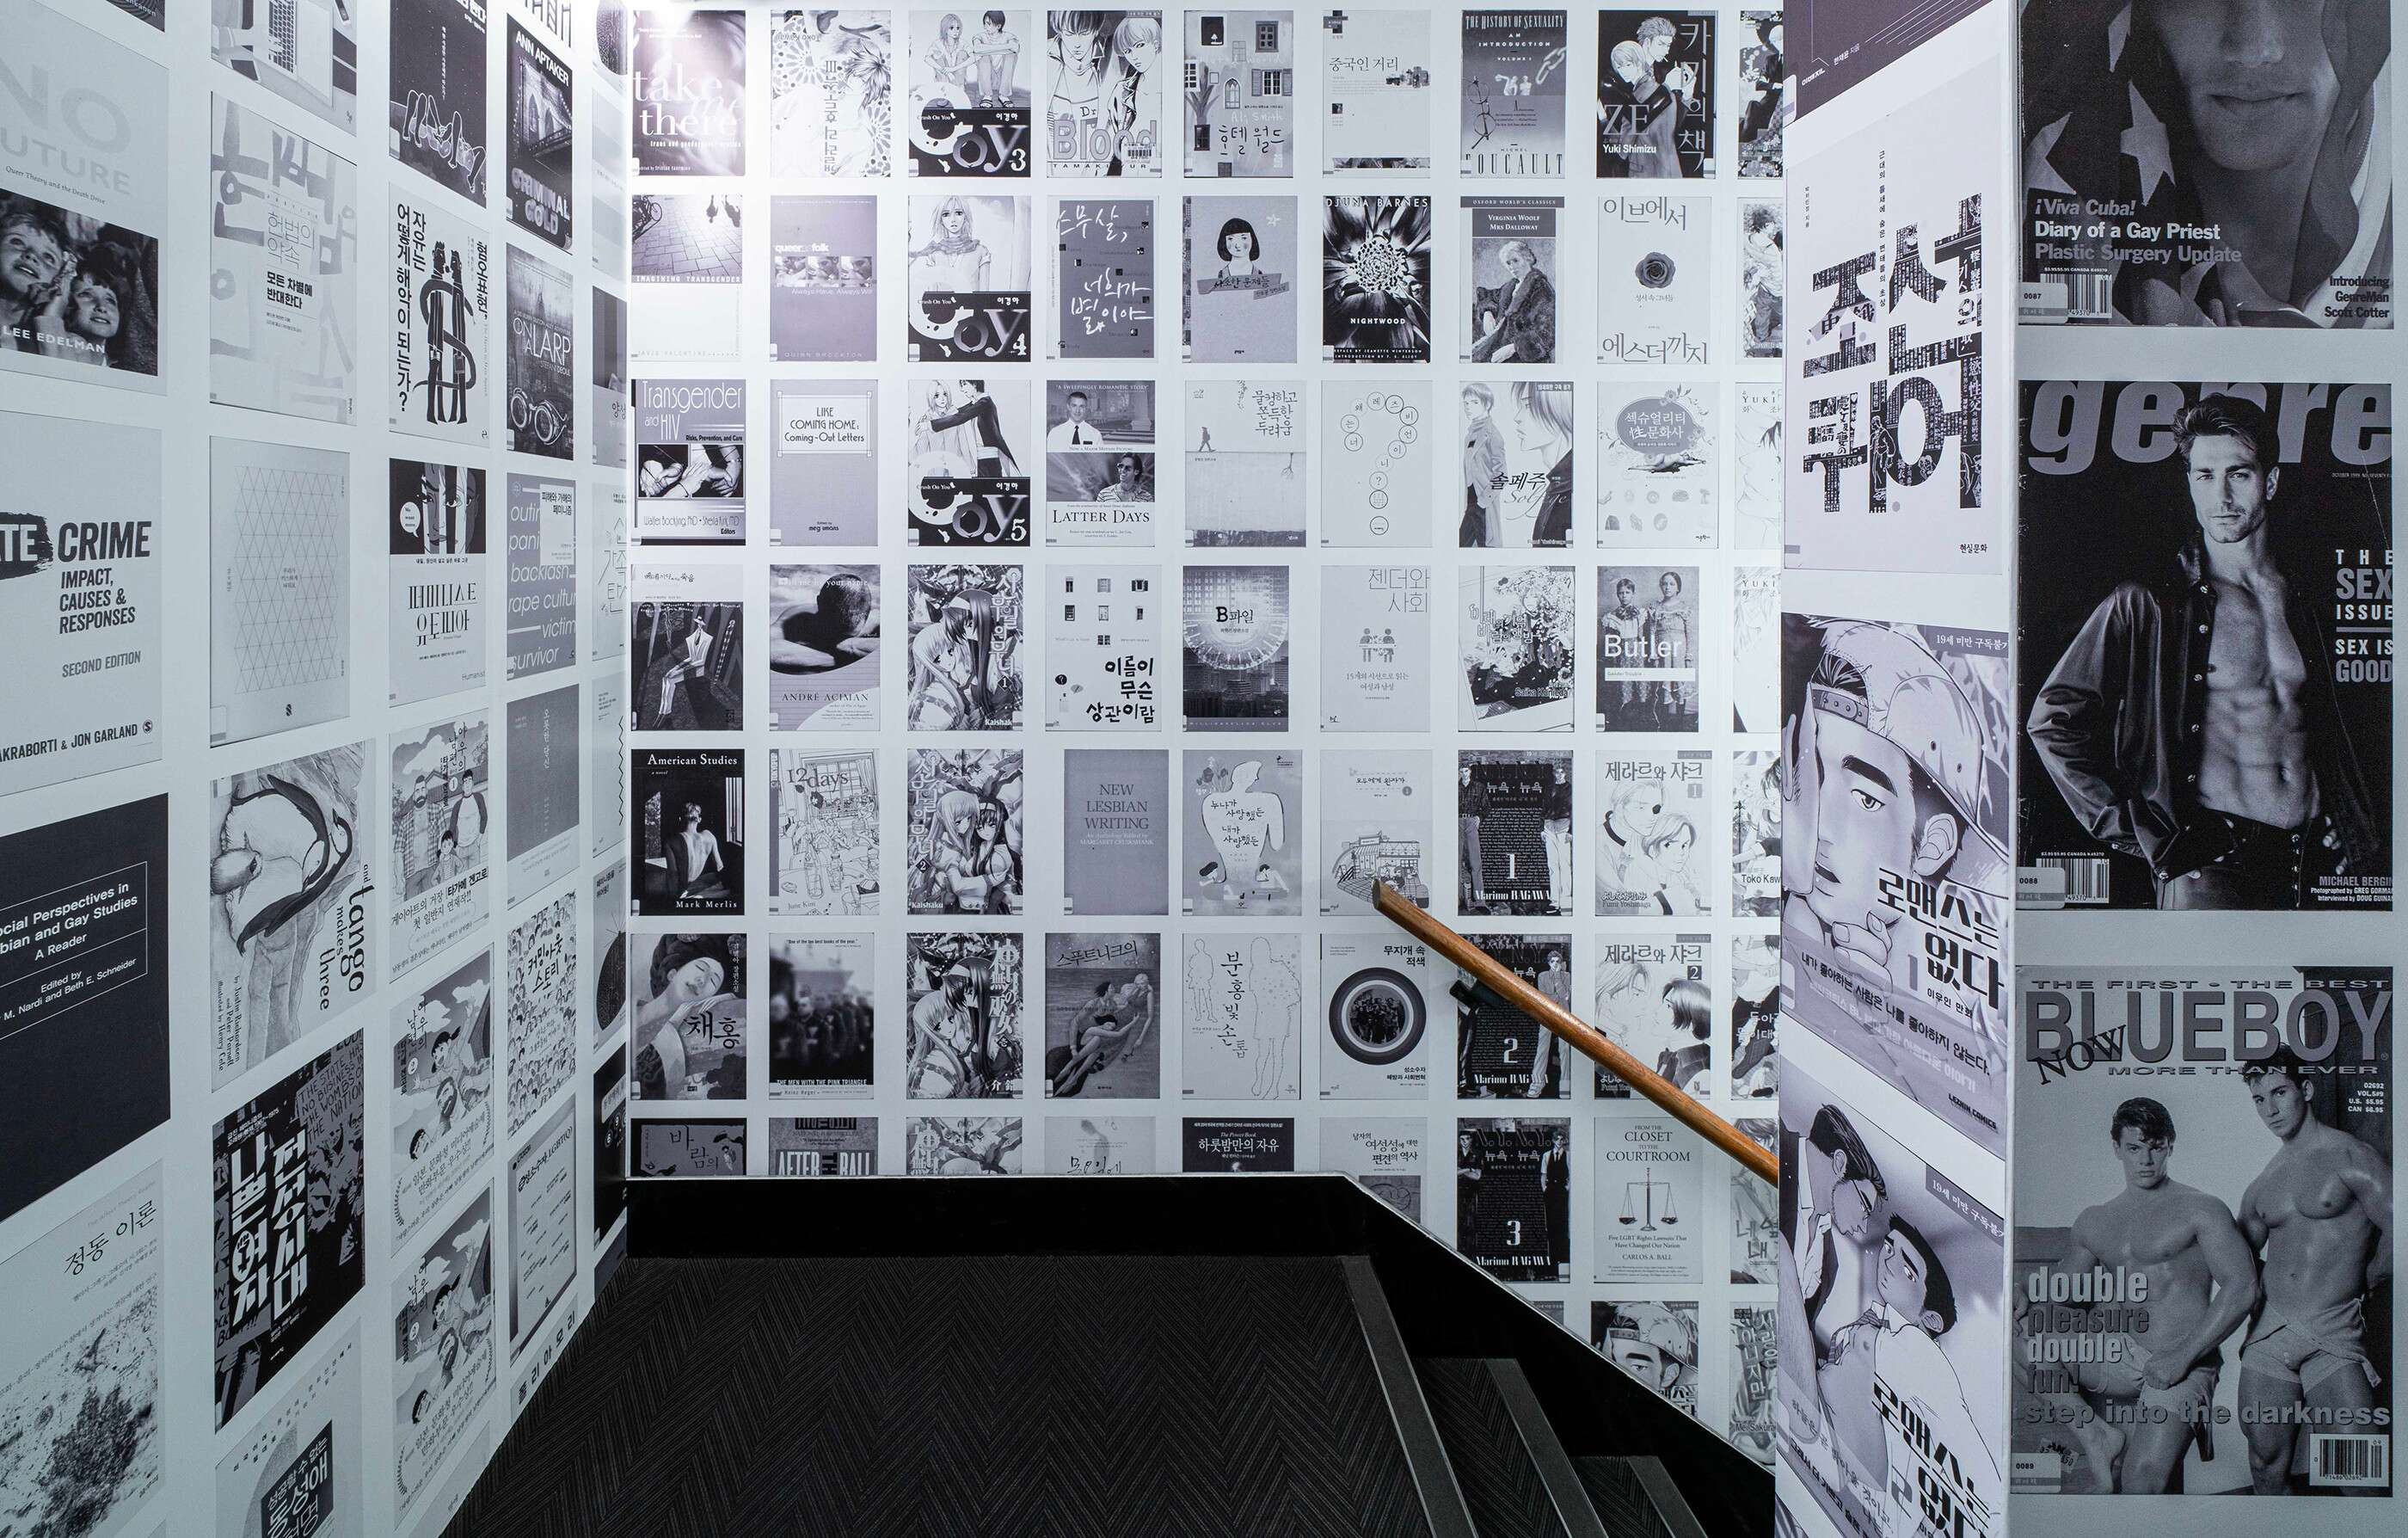 Lee-Kang-Seung-Covers-QueerArch-2019-2020-Exhibition-No-Space-Just-a-Place-Daelim-Museum-Seoul-2020